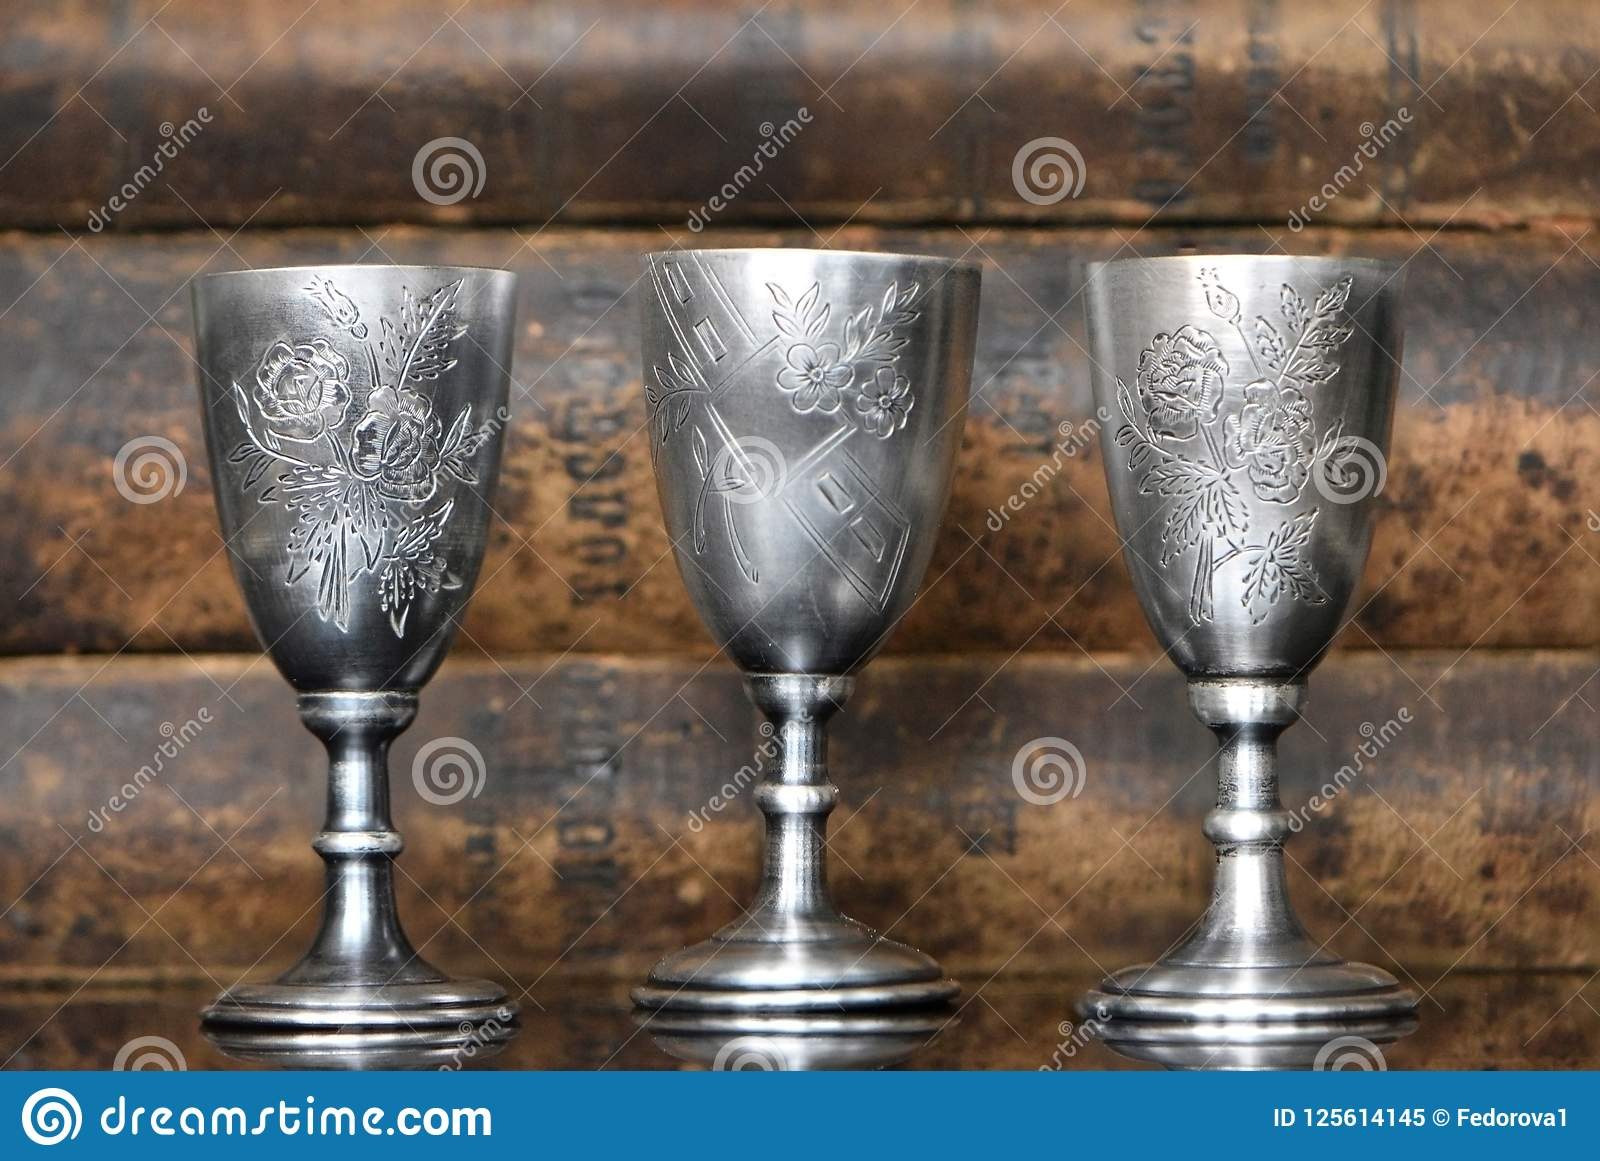 Silver glasses on the background of old books